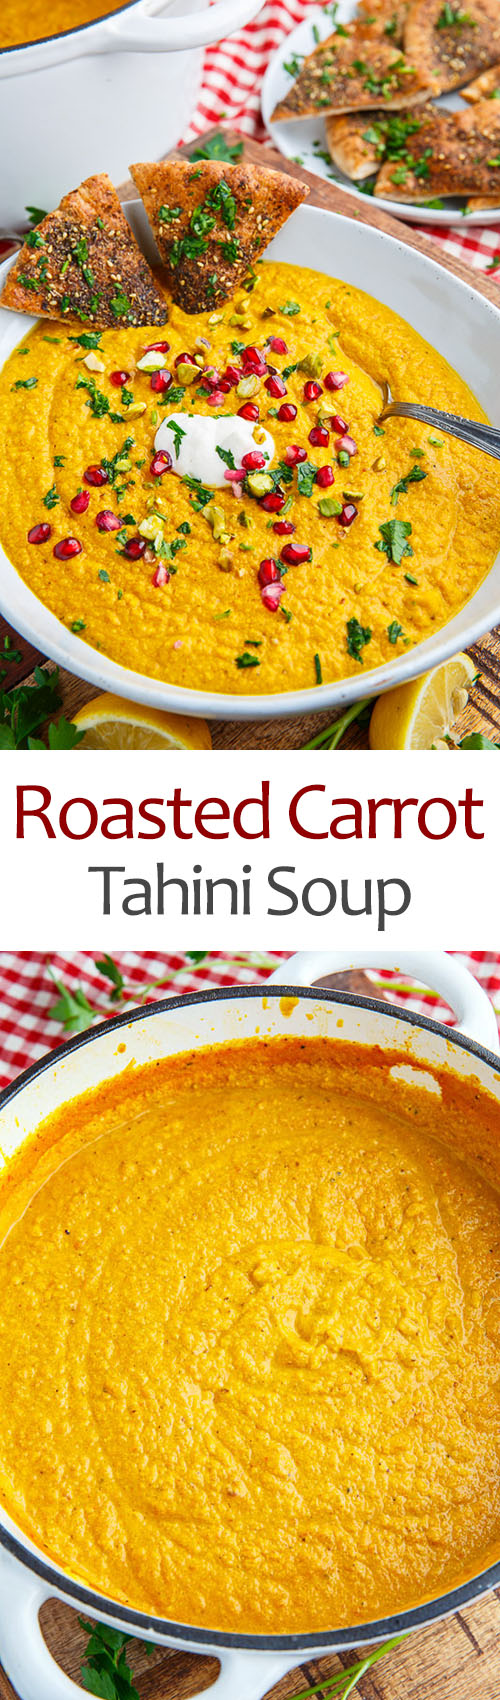 Roasted Carrot and Tahini Soup with Pomegranate and Pistachios